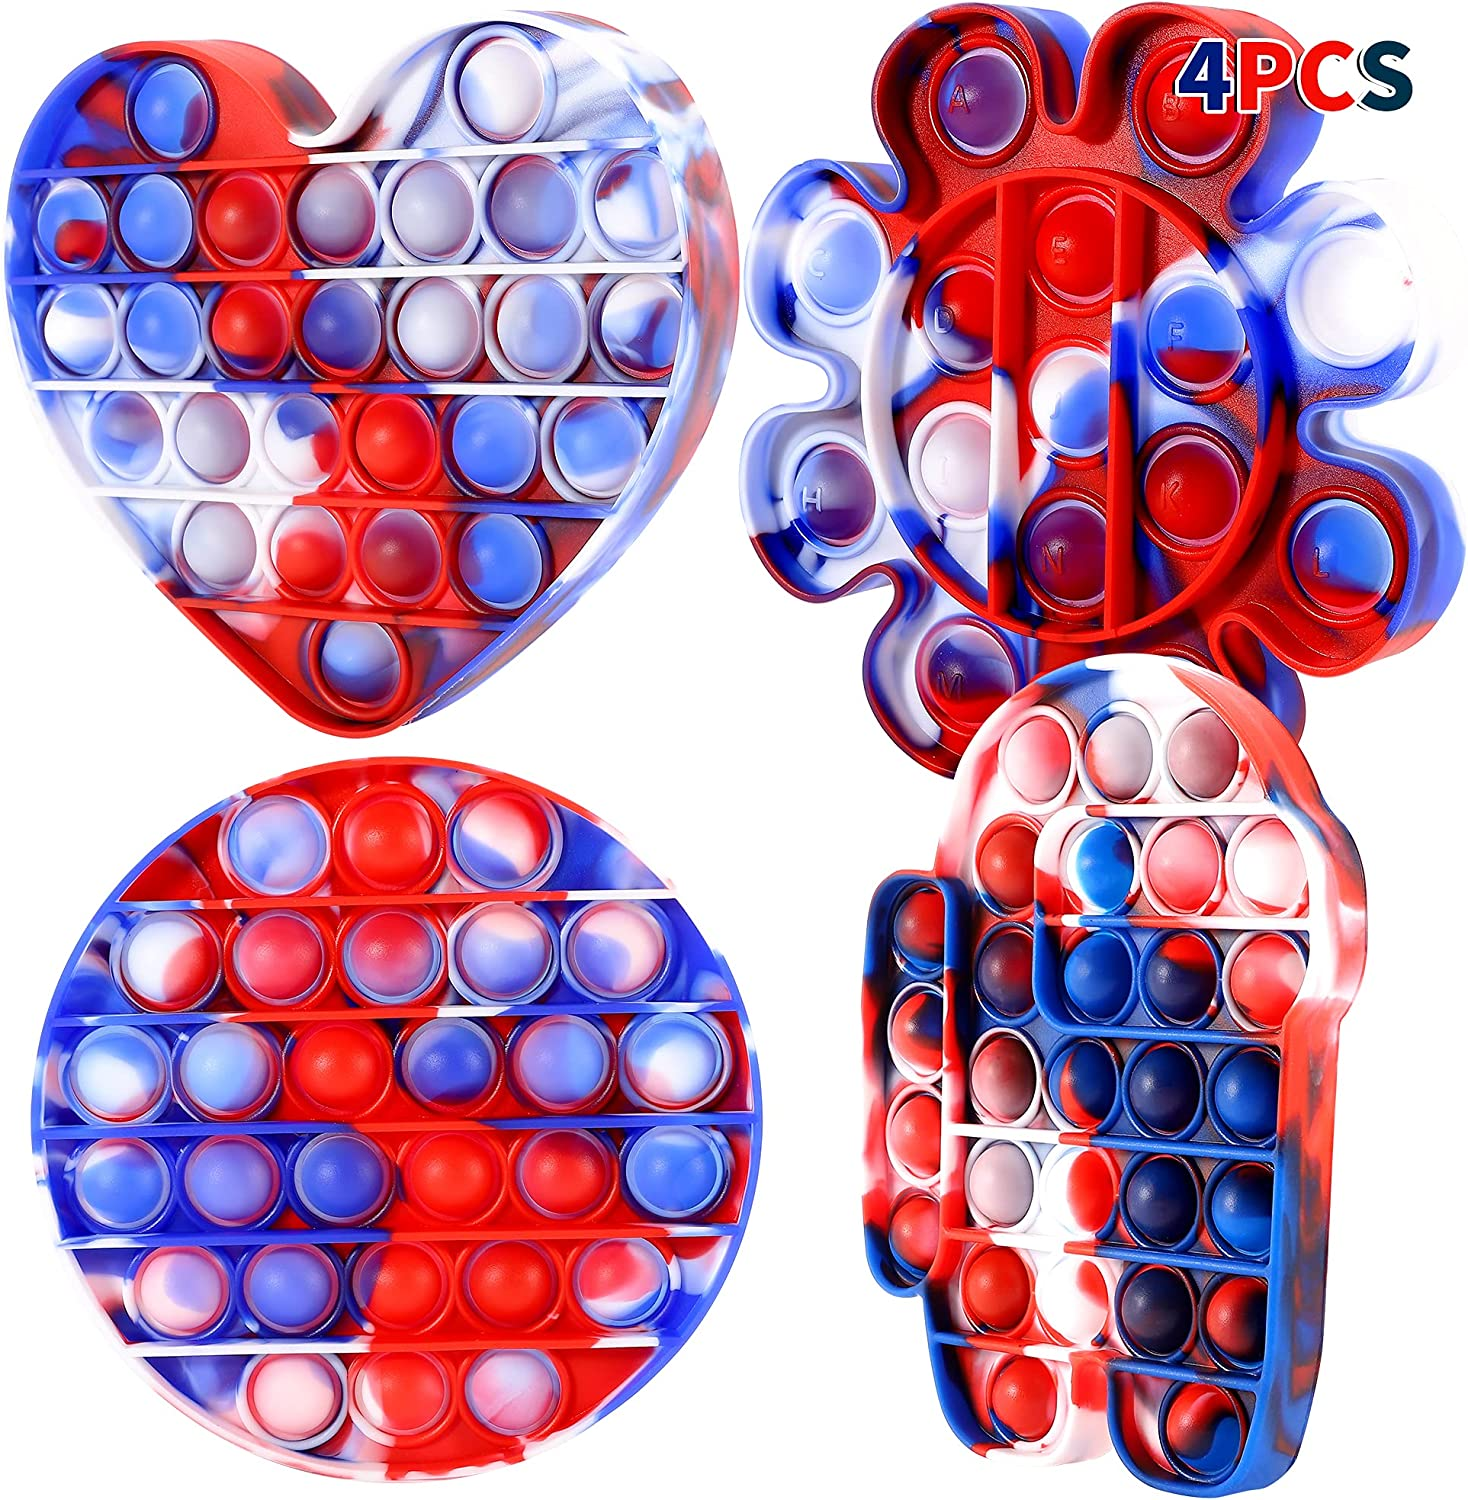 F FiGoal 4 PCS Pop Bubble Fidget Toy, Stress Relief Anxiety Squeeze Sensory Toys Autism Special Needs Stress Reliever for Home School & Office Kids Family